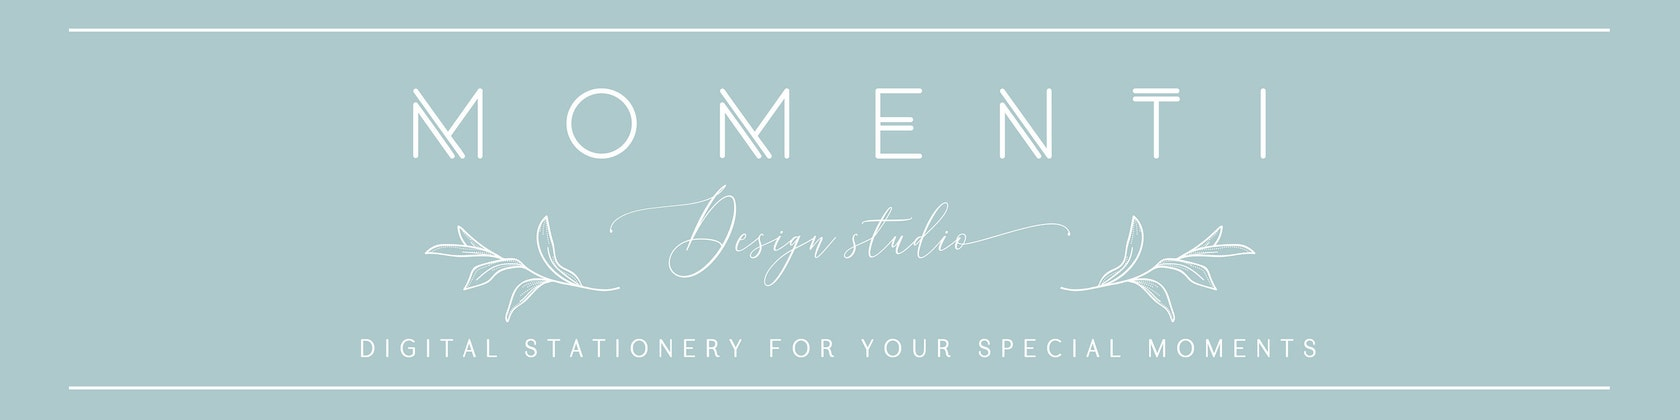 Digital stationery for your special moments by MomentiDesignStudio